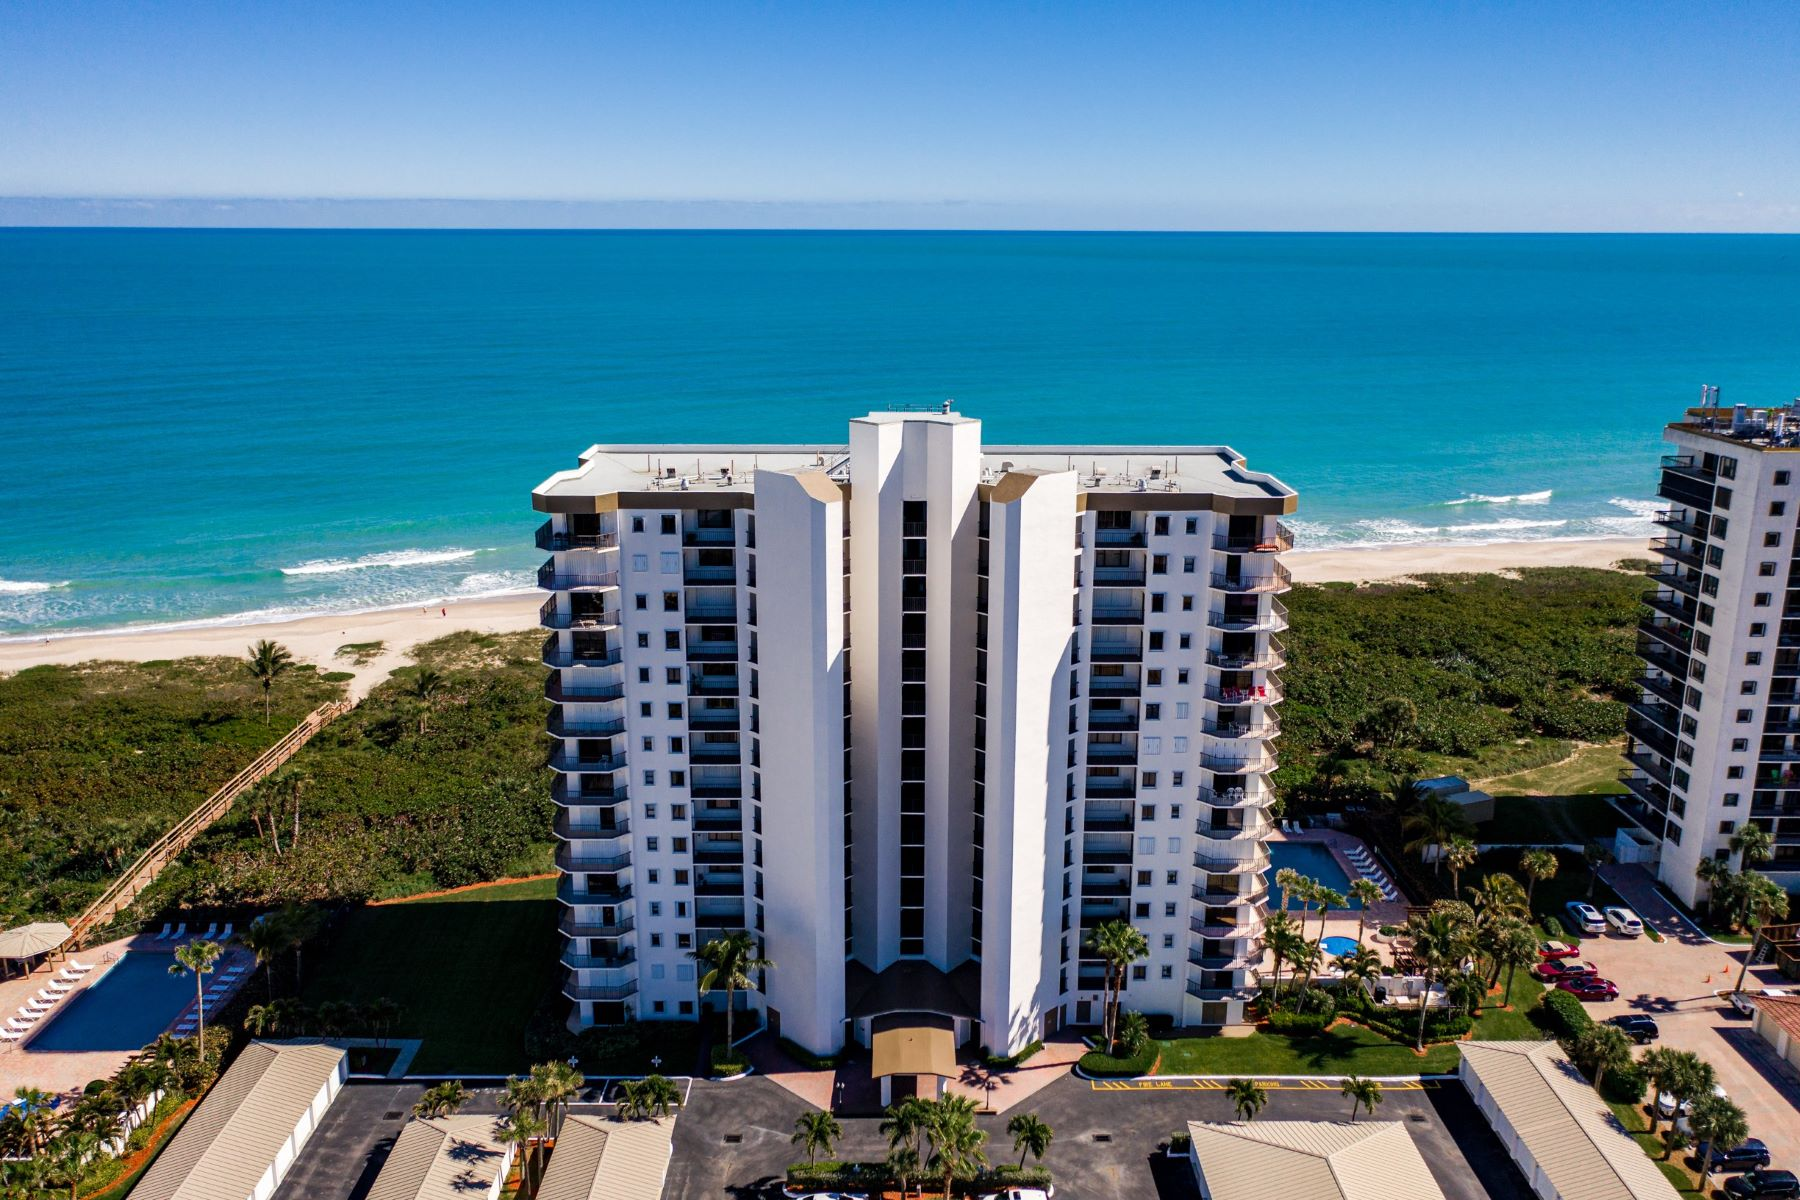 for Sale at 3120 N Highway A1a 503S Hutchinson Island, Florida 34949 United States